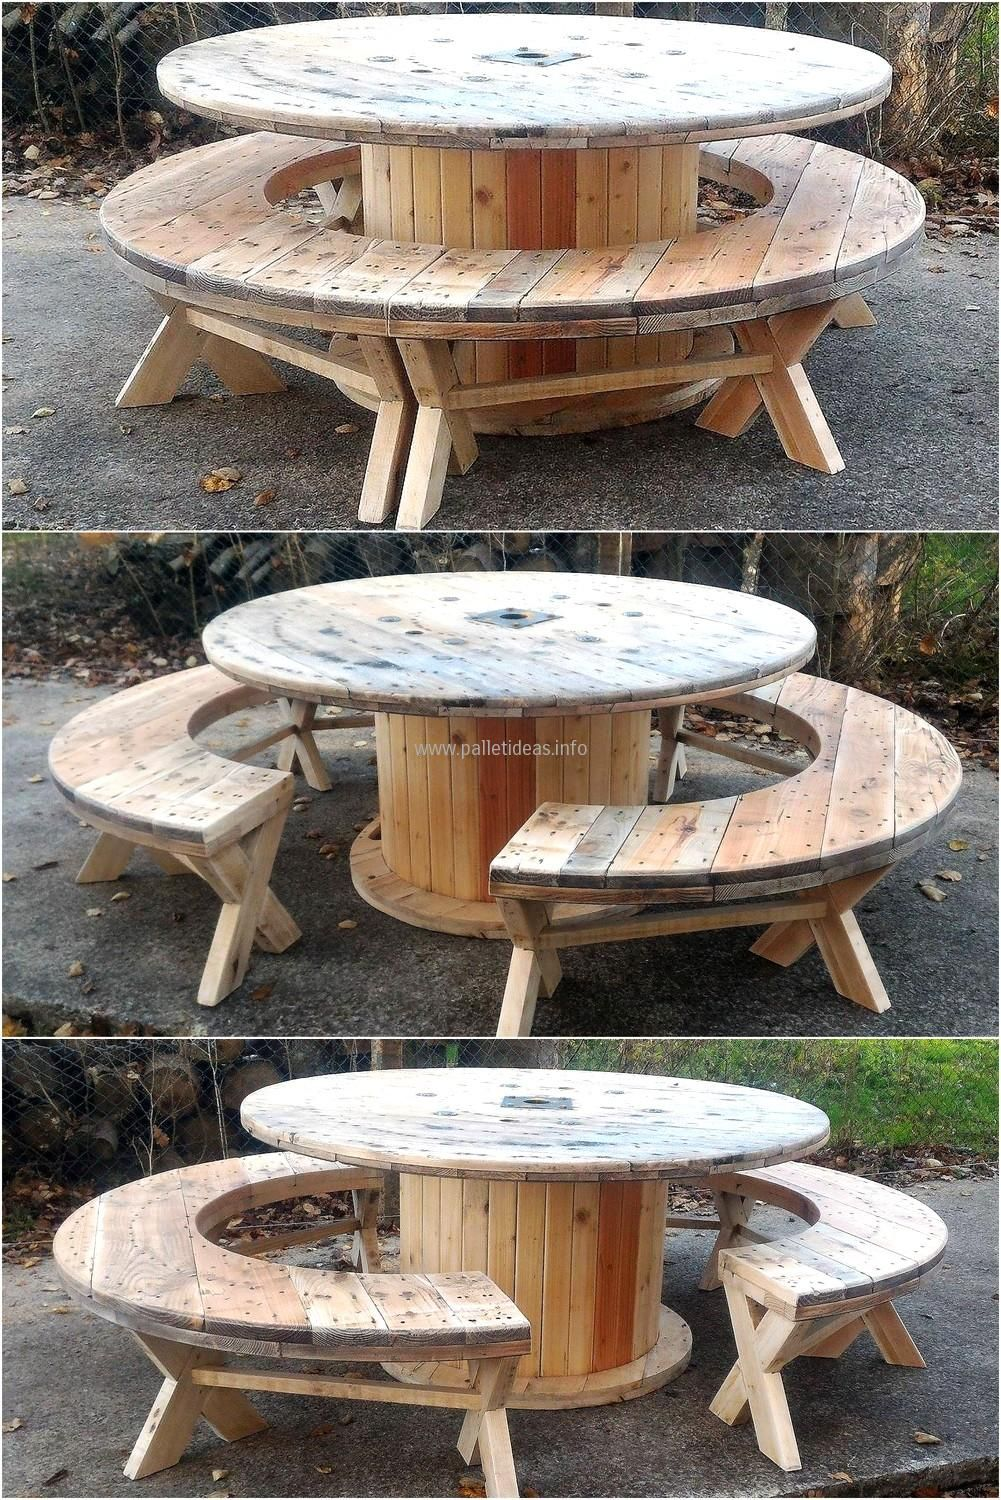 recycled pallet patio furniture. recycled pallet cable reel patio furniture s